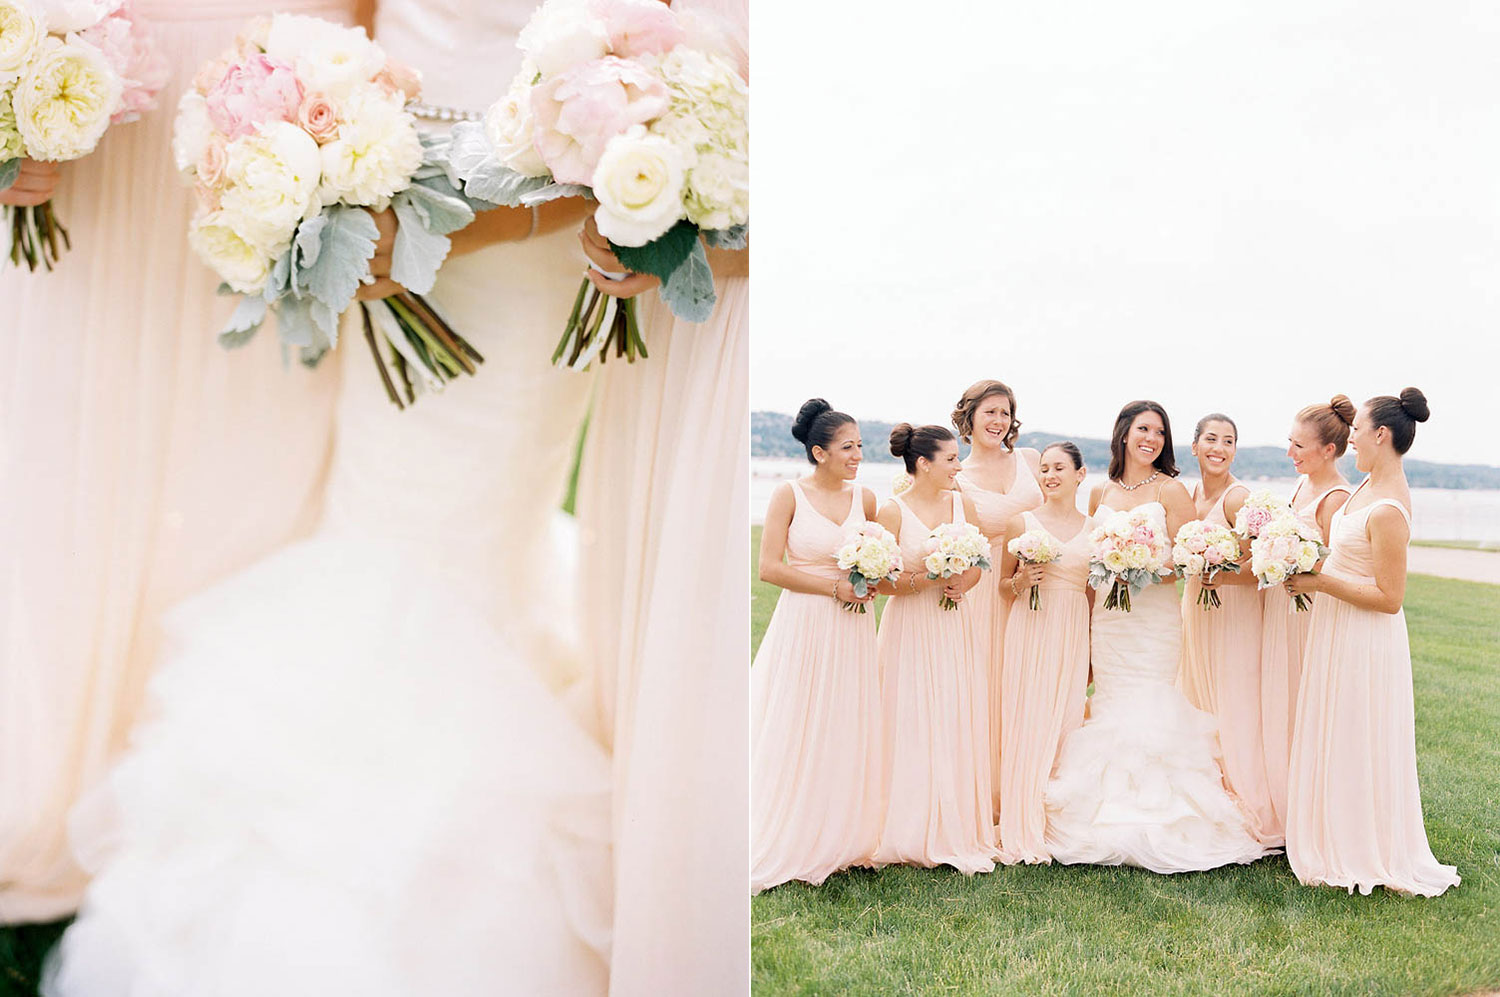 blush dresses with lambsear bouquets